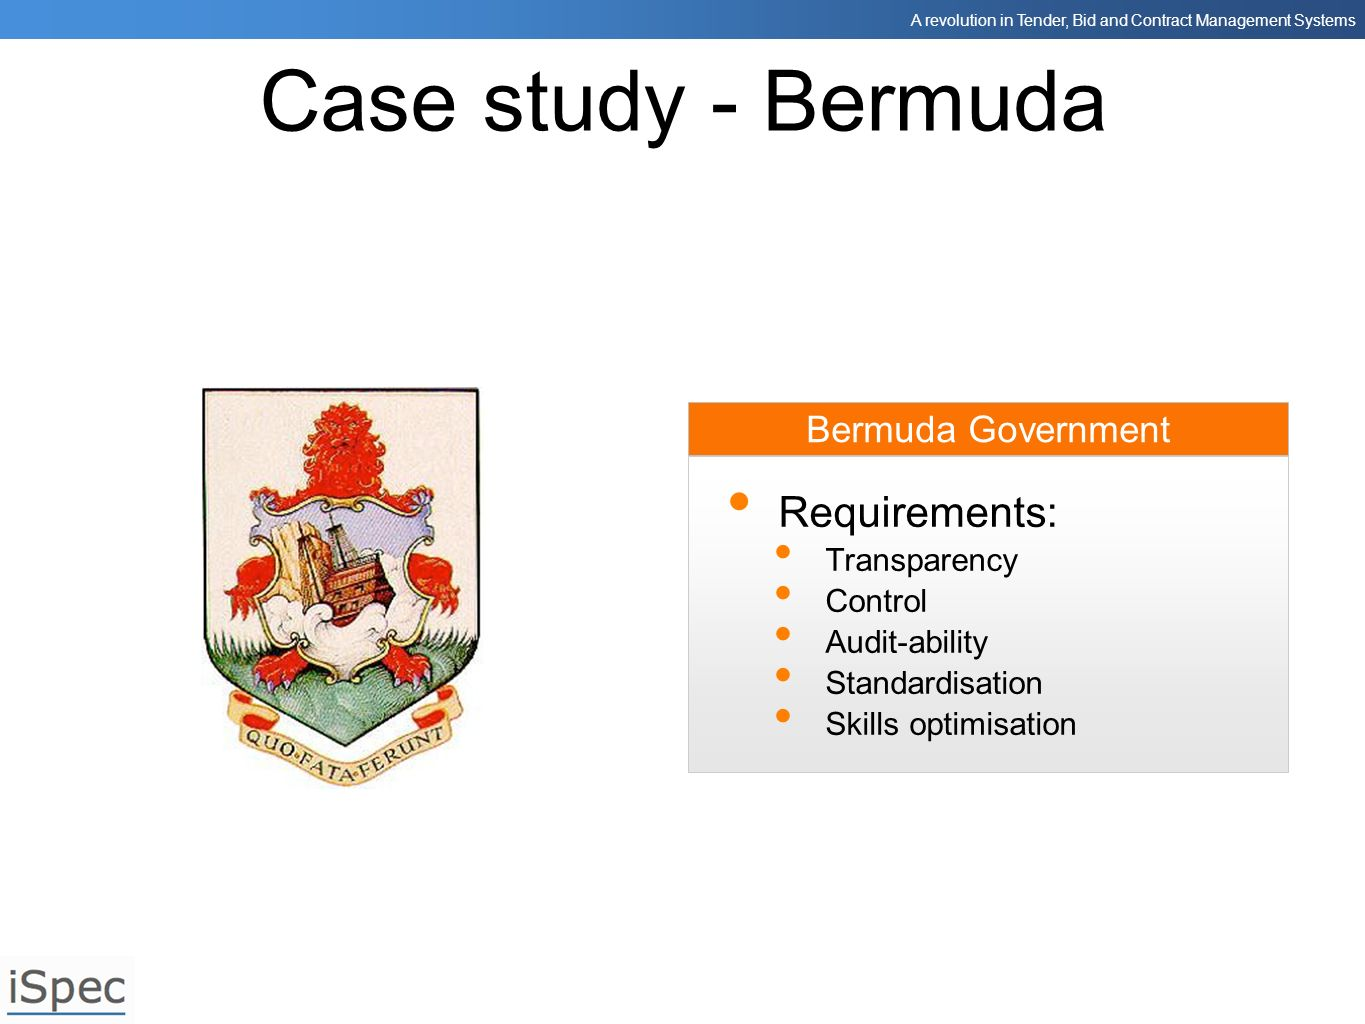 Case study - Bermuda Requirements: Bermuda Government Transparency